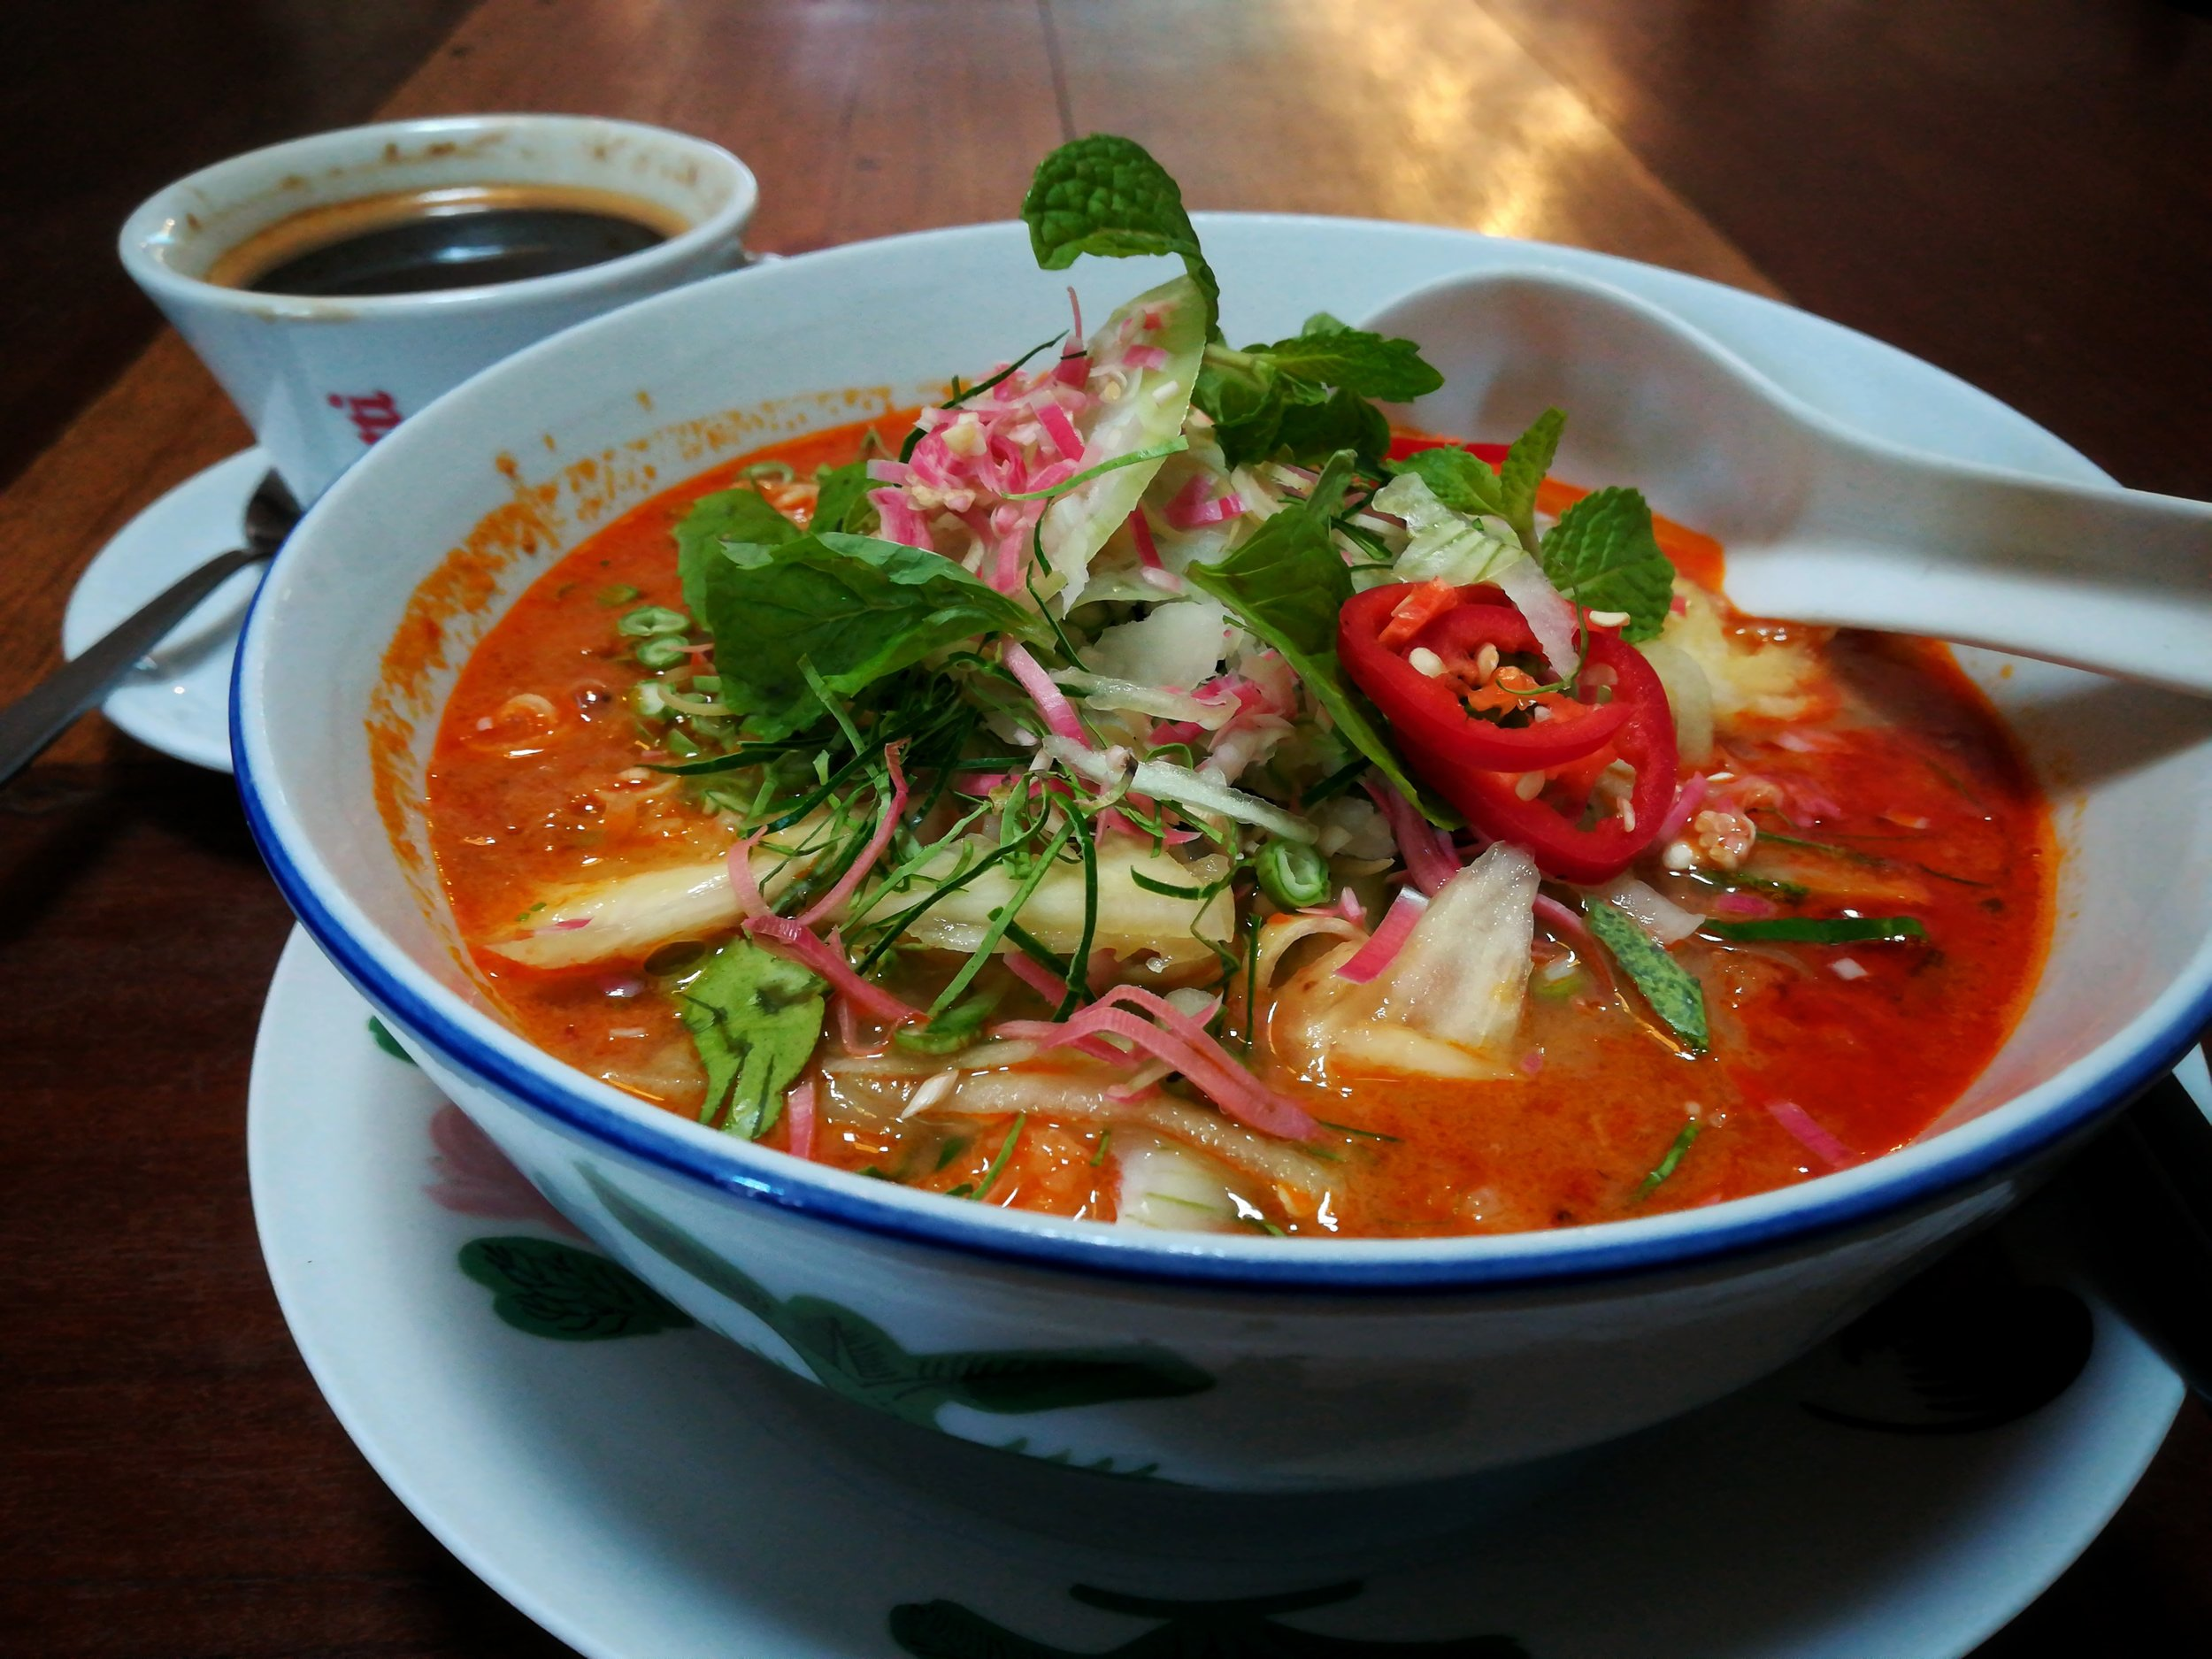 Rich and creamy, with a tangy but satisfying coconut taste, the Ren I Tang Asam Laksa comes with all the bells and whistles. It has the subtle bite of the grated bunga kantan (torch ginger flower) and the beautiful fragrance of mint and herbs. It's probably closer to a southern Laksa because of its strong coconut taste, but it's still one of our favourites in Penang.